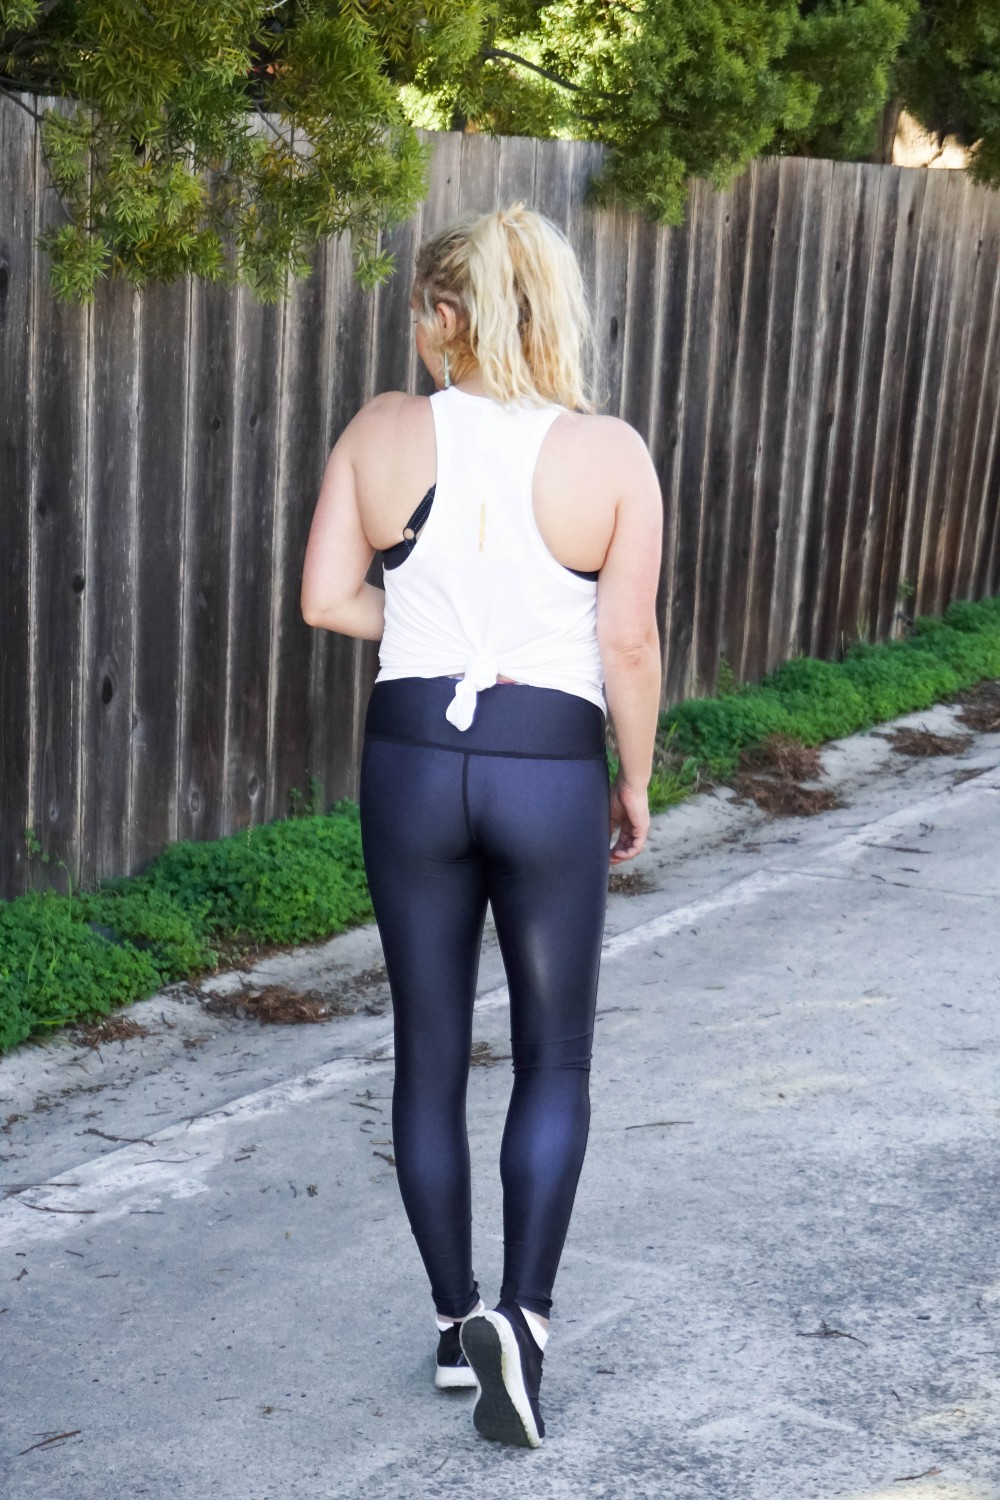 Whole30 Week 4, Peach Workout Wear, Fitness Apparel, Nike Juvenate Shoes, Whole30 Progress, Breastfeeding Whole30, Fitness Goals, Healthy Living, Have Need Want